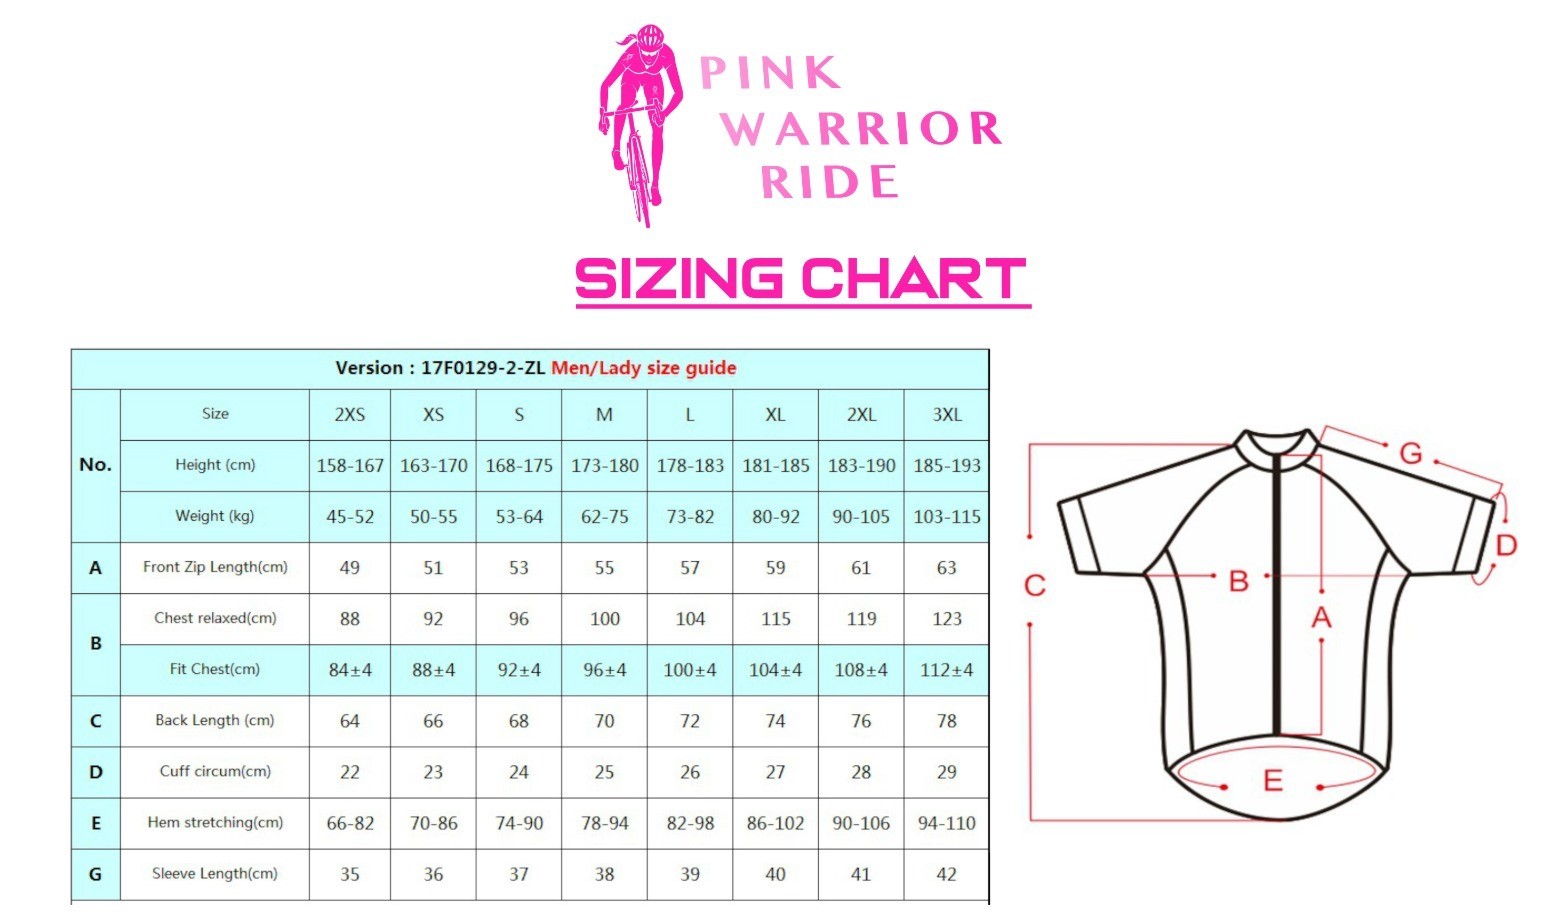 Pink Warrior Jersey Sizing Chart